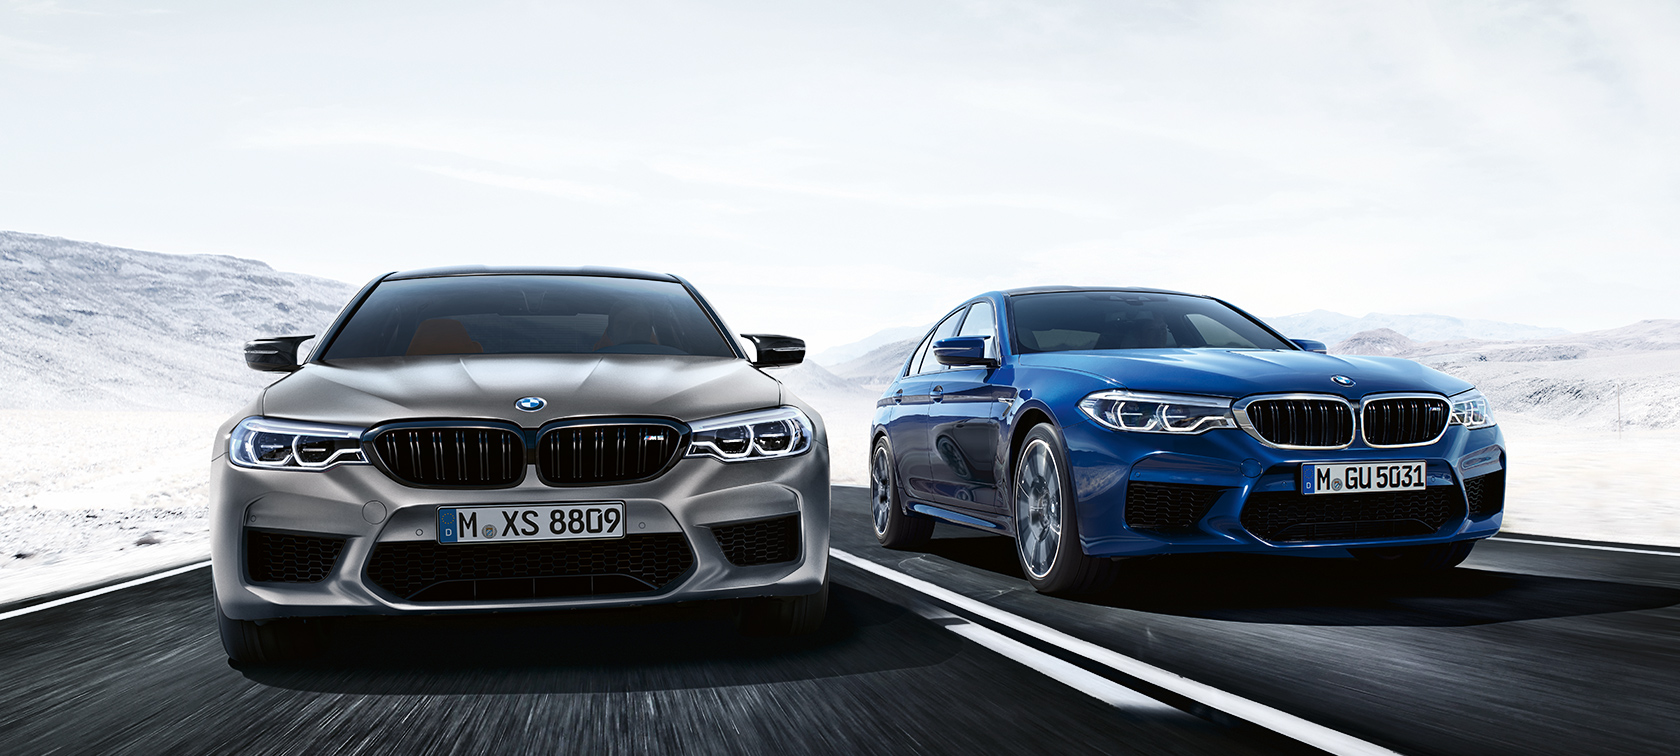 Grey M5 Competition and blue BMW M5 driving on highway in front of desert landscape